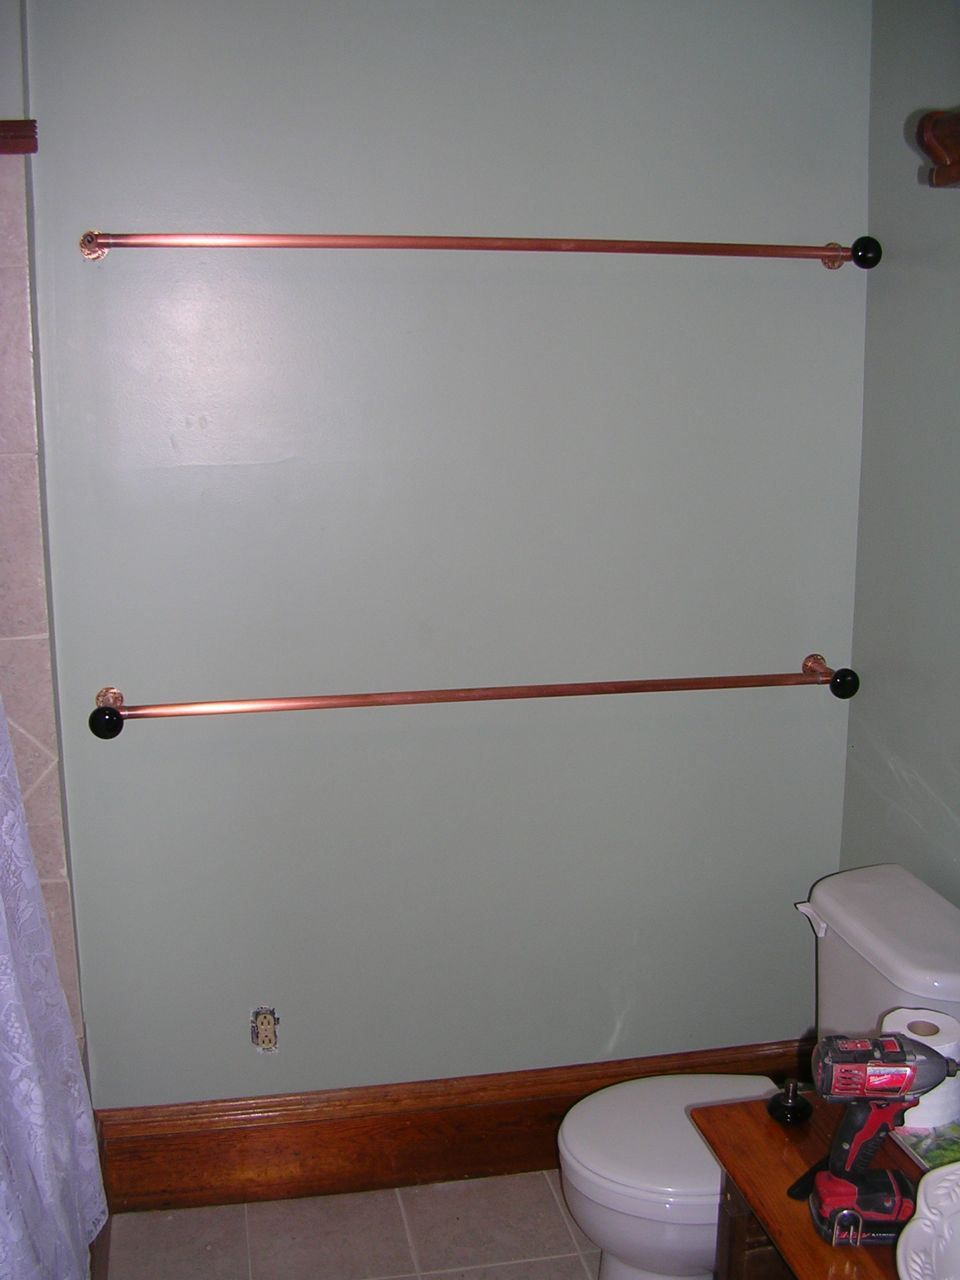 Bathroom Towel Bars Extra Long